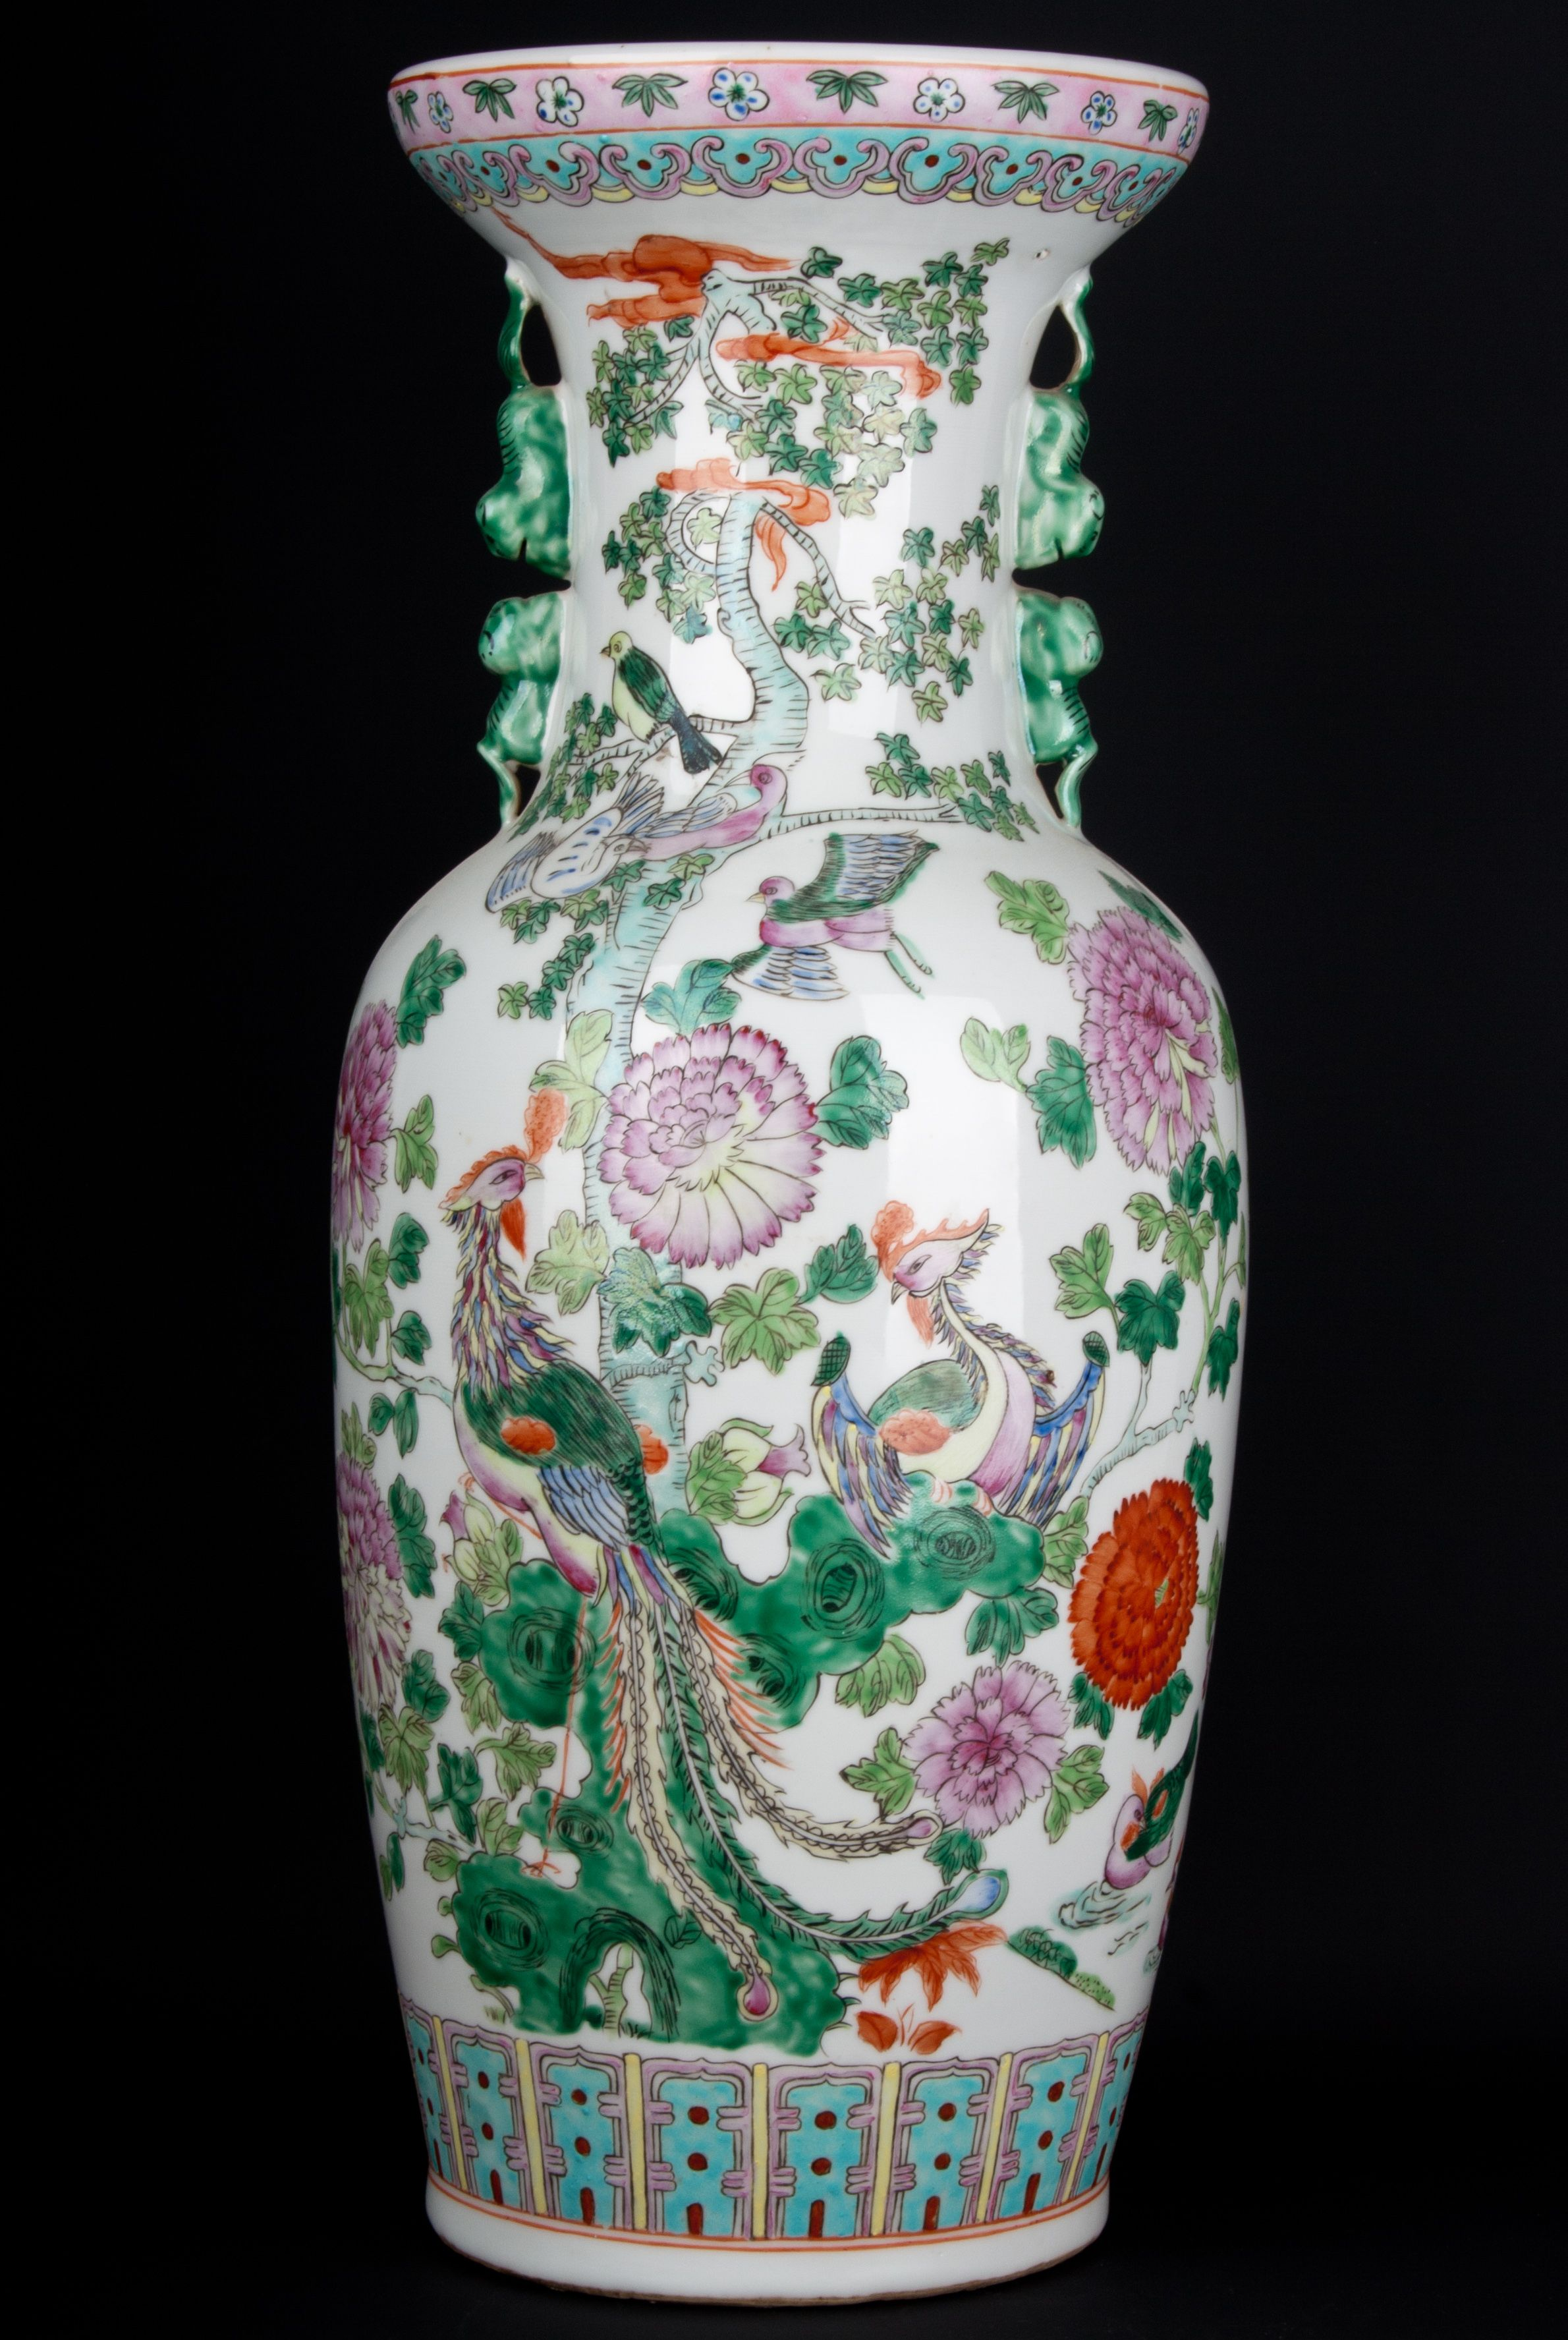 Description A Large Chinese Baluster Vase In Early 19th Century